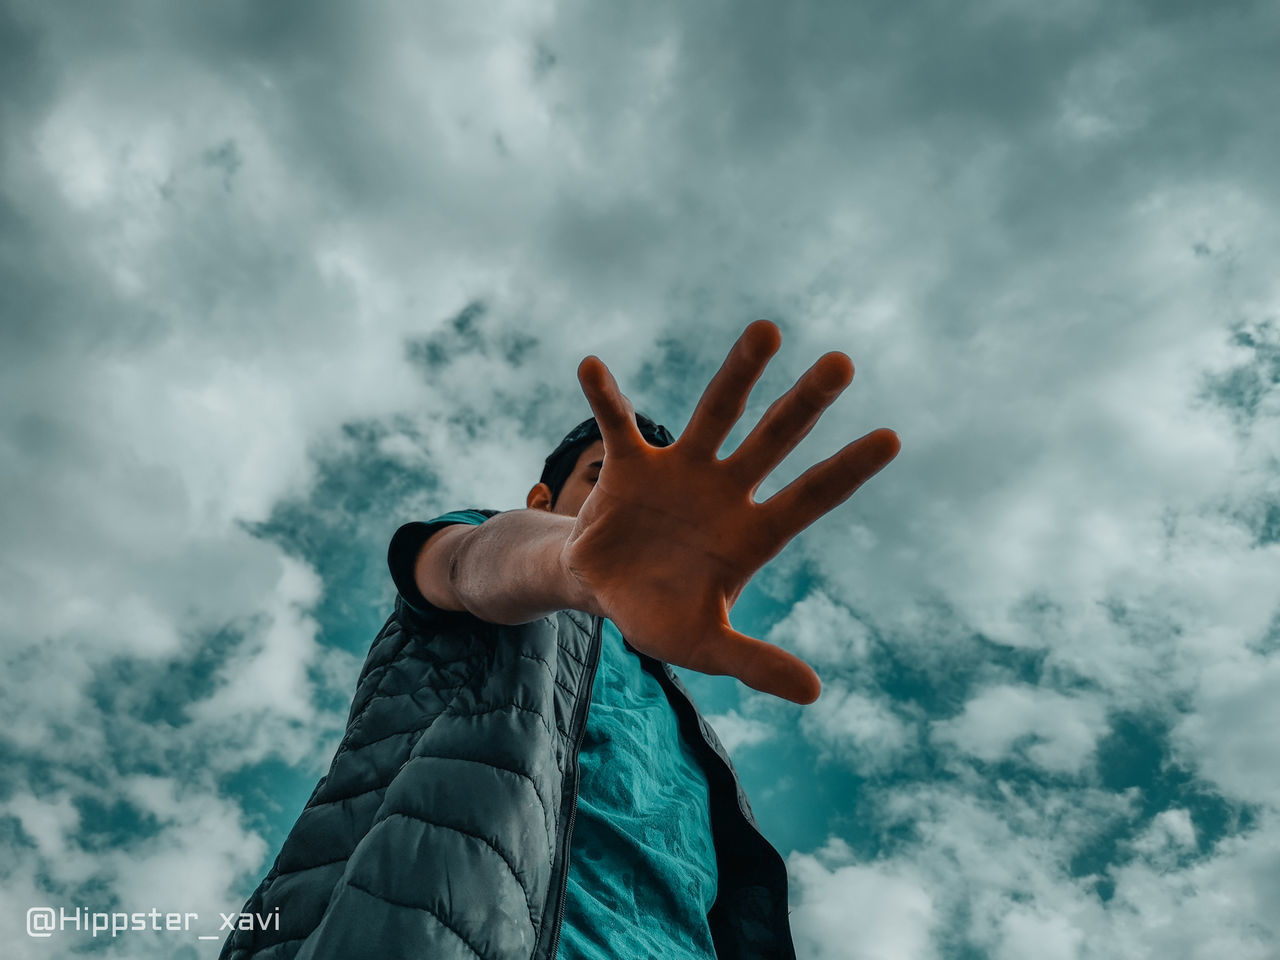 LOW ANGLE VIEW OF HUMAN HAND AGAINST CLOUDY SKY